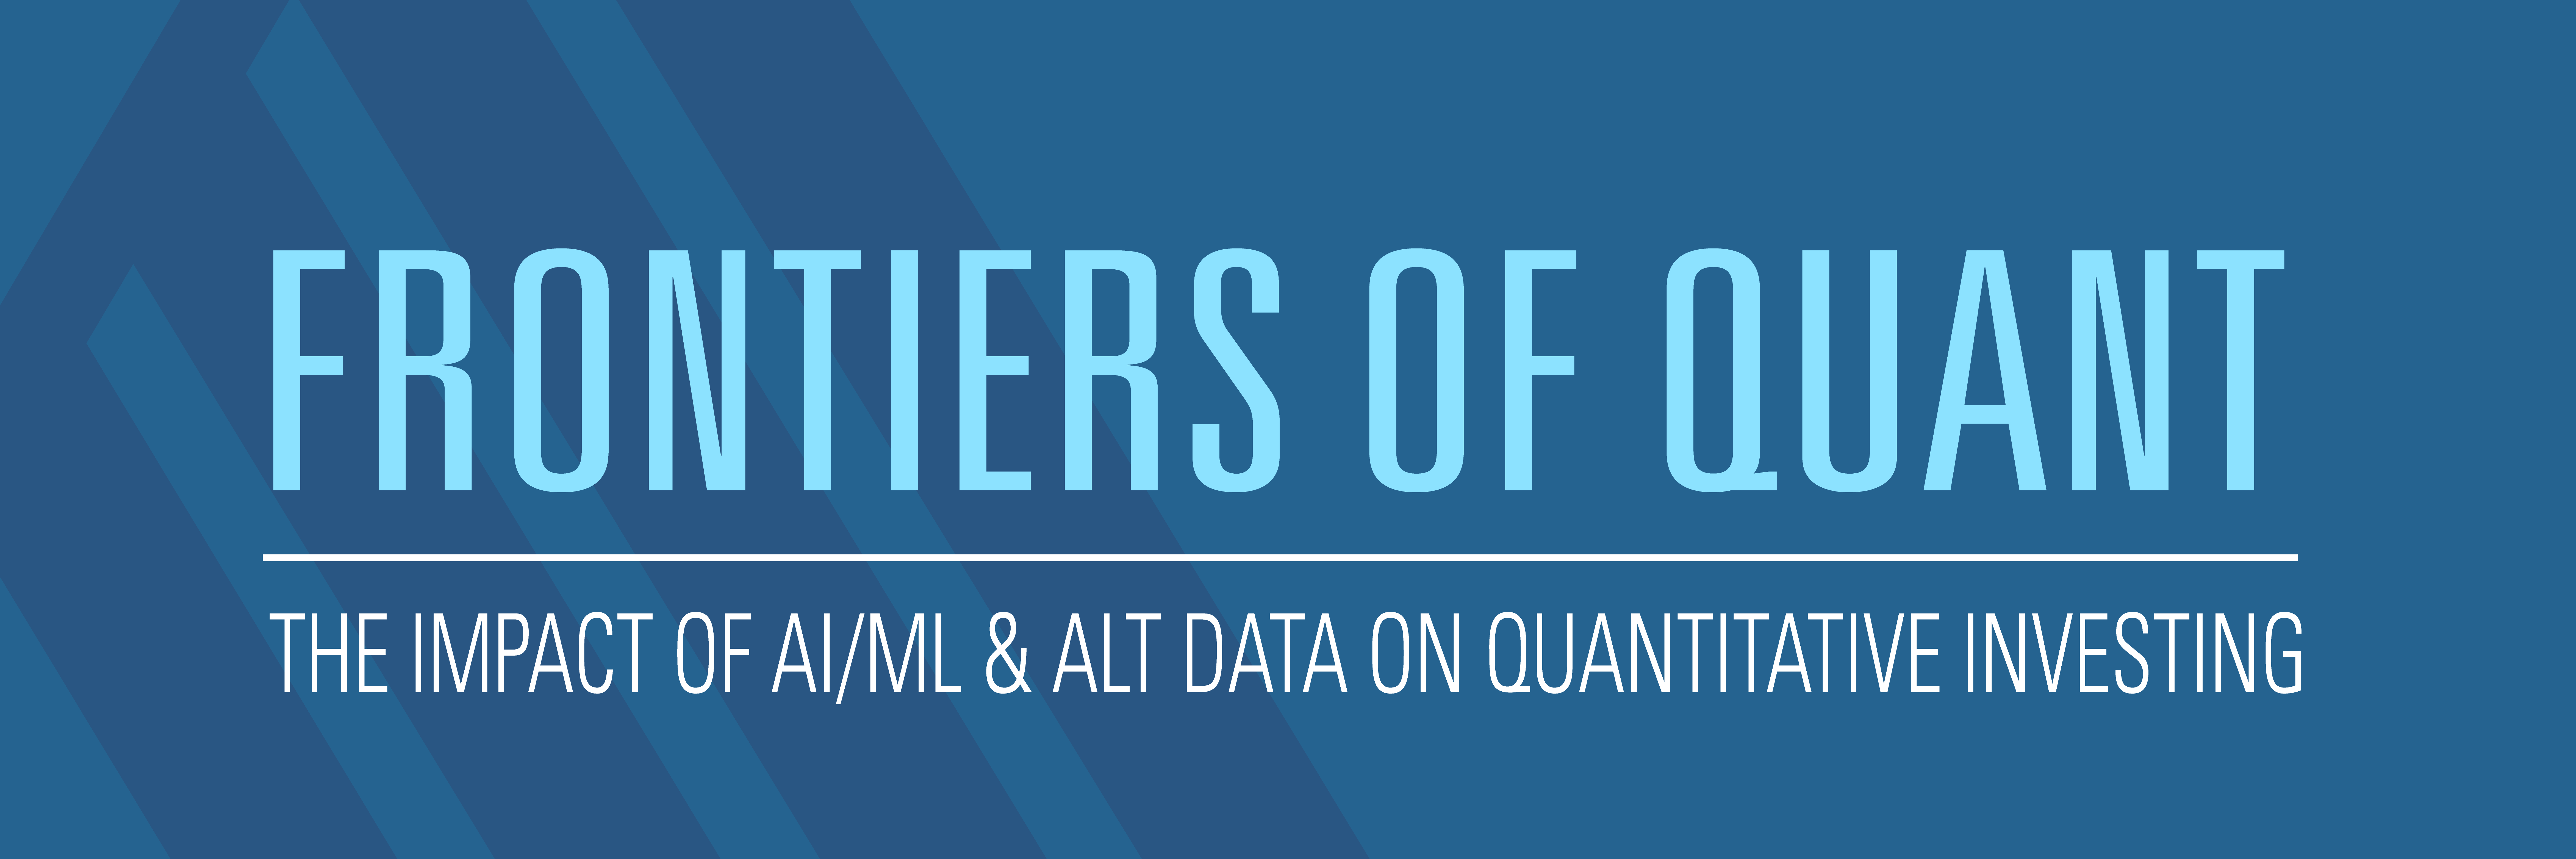 Frontiers of Quant